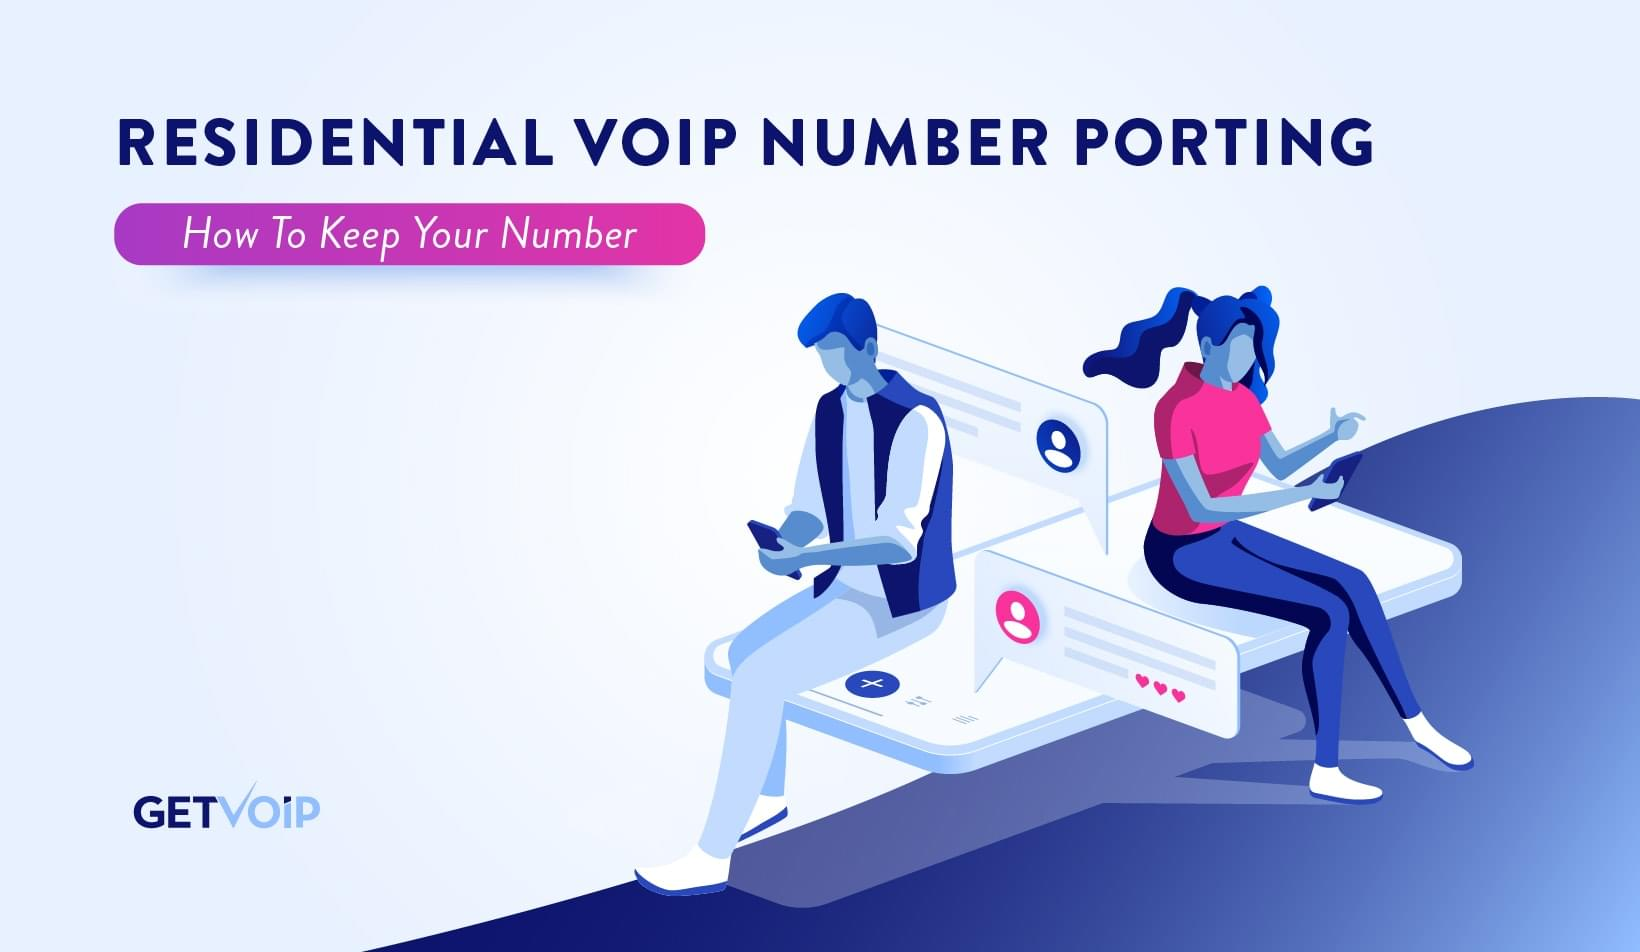 Residential VoIP Number Porting – How To Keep Your Number